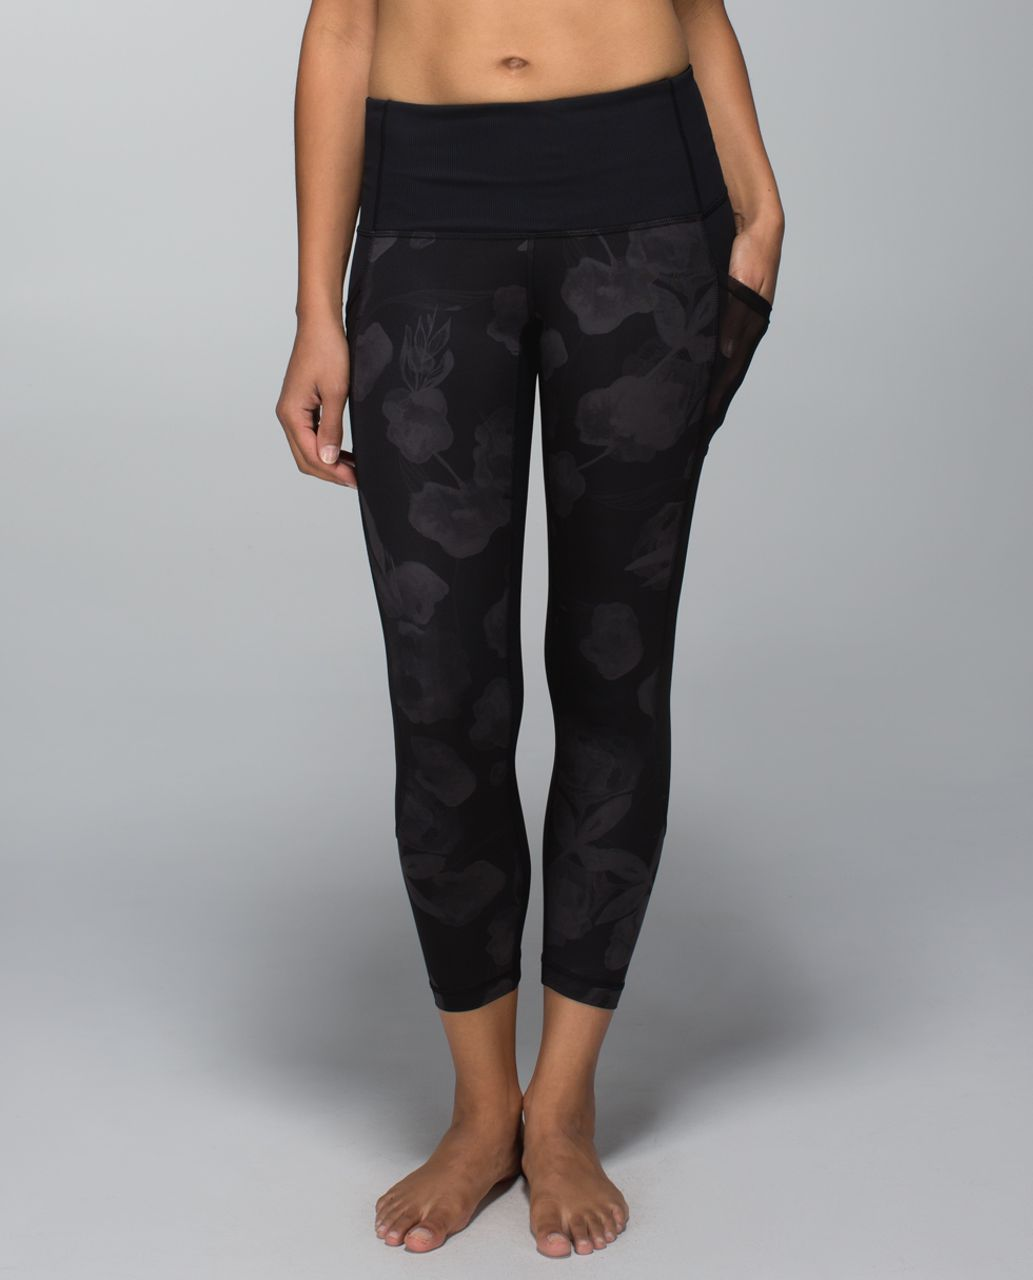 feebe557dab29 Lululemon Seek The Heat Crop - Inky Floral Soot Black / Black - lulu  fanatics